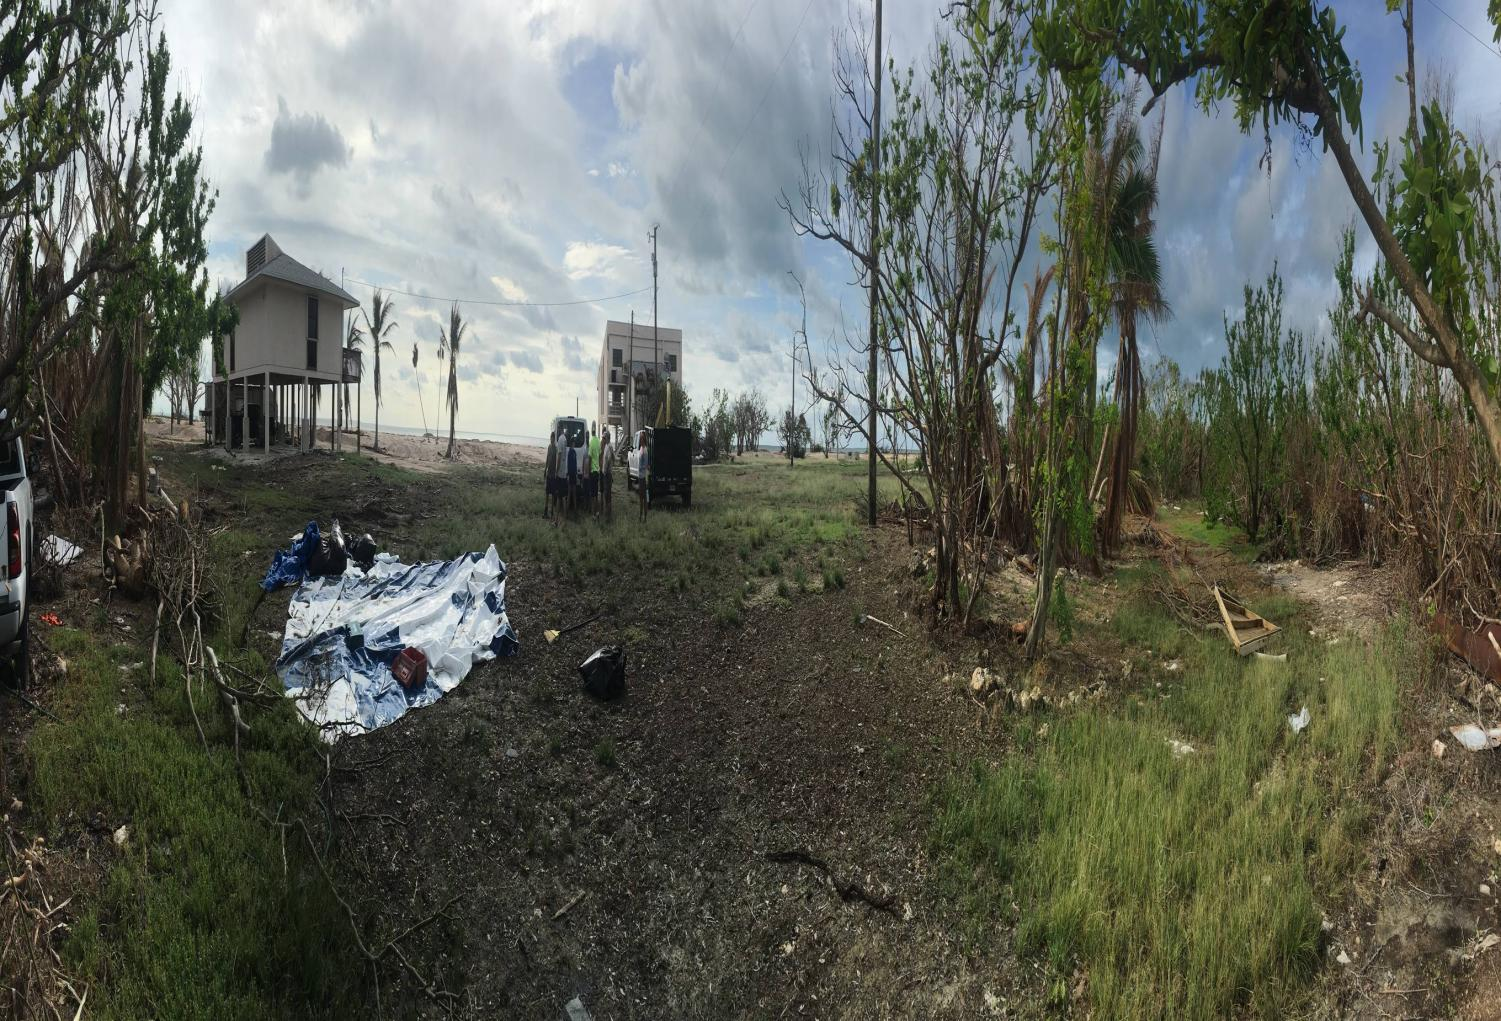 John Arnold's  panoramic of the houses that have once been intact, now left in ruins. The volunteers who were with him are just left in shock from the chaos of Irma.